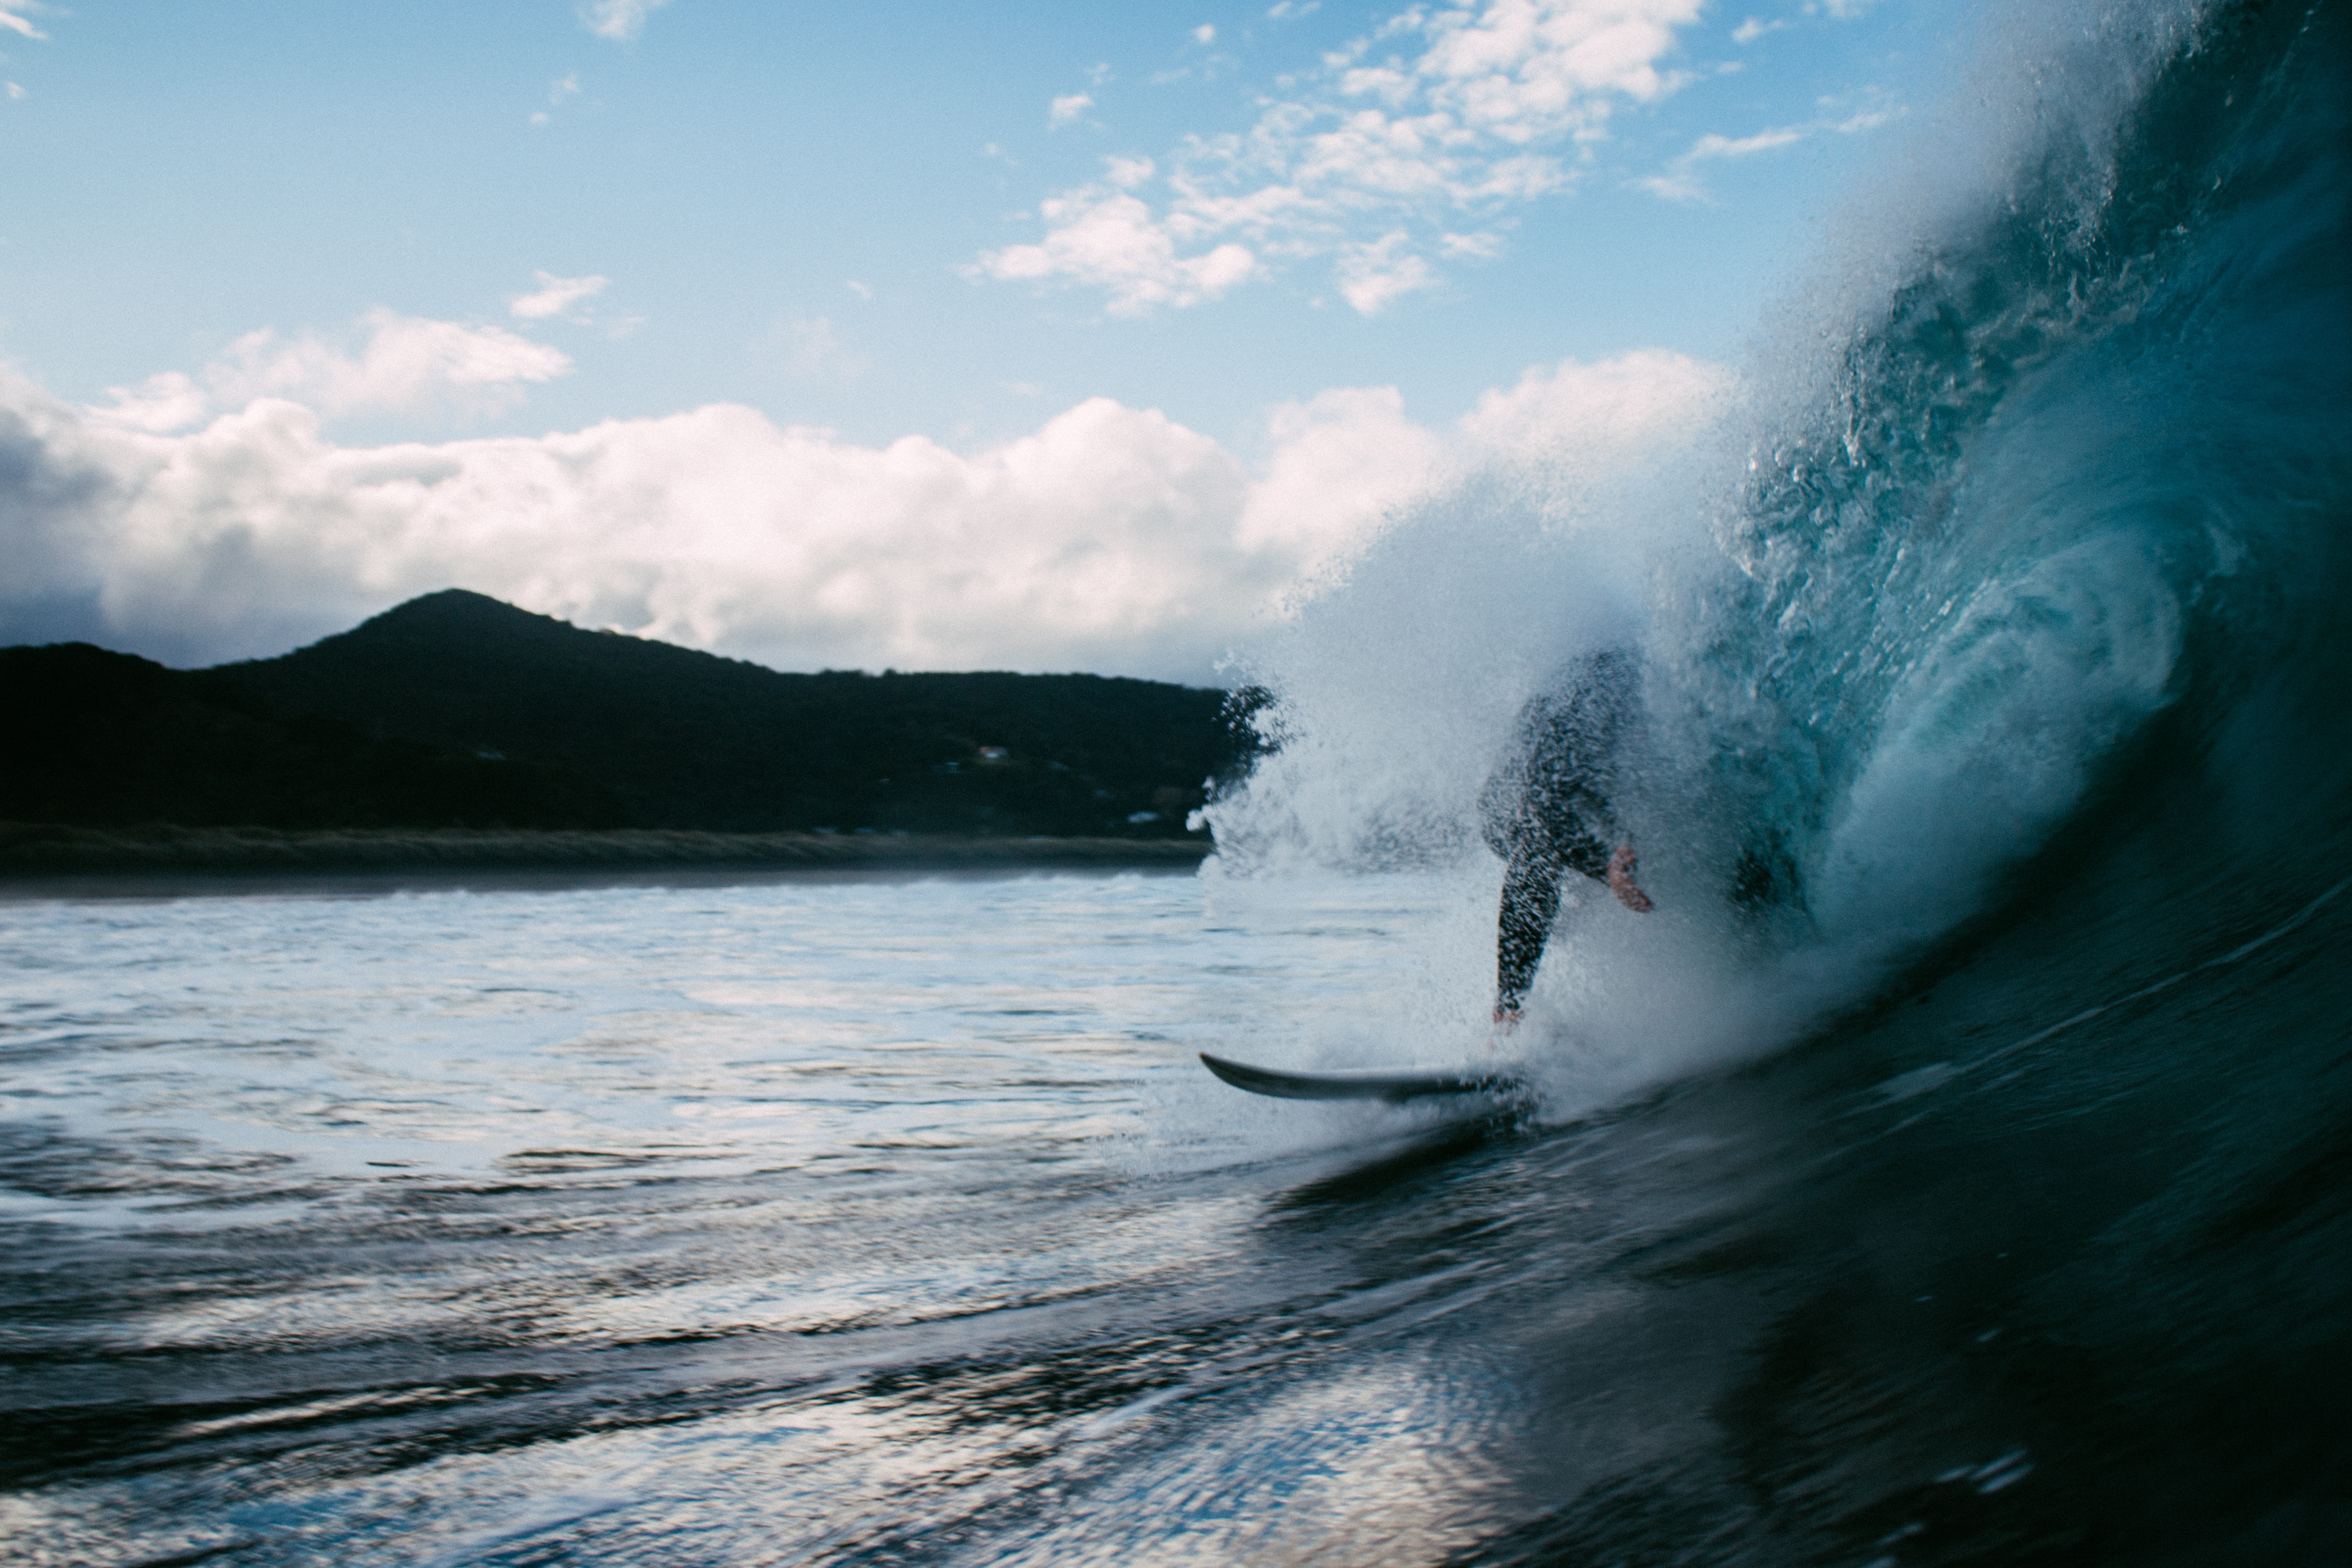 Surfer surfing on the wave at Piha Beach